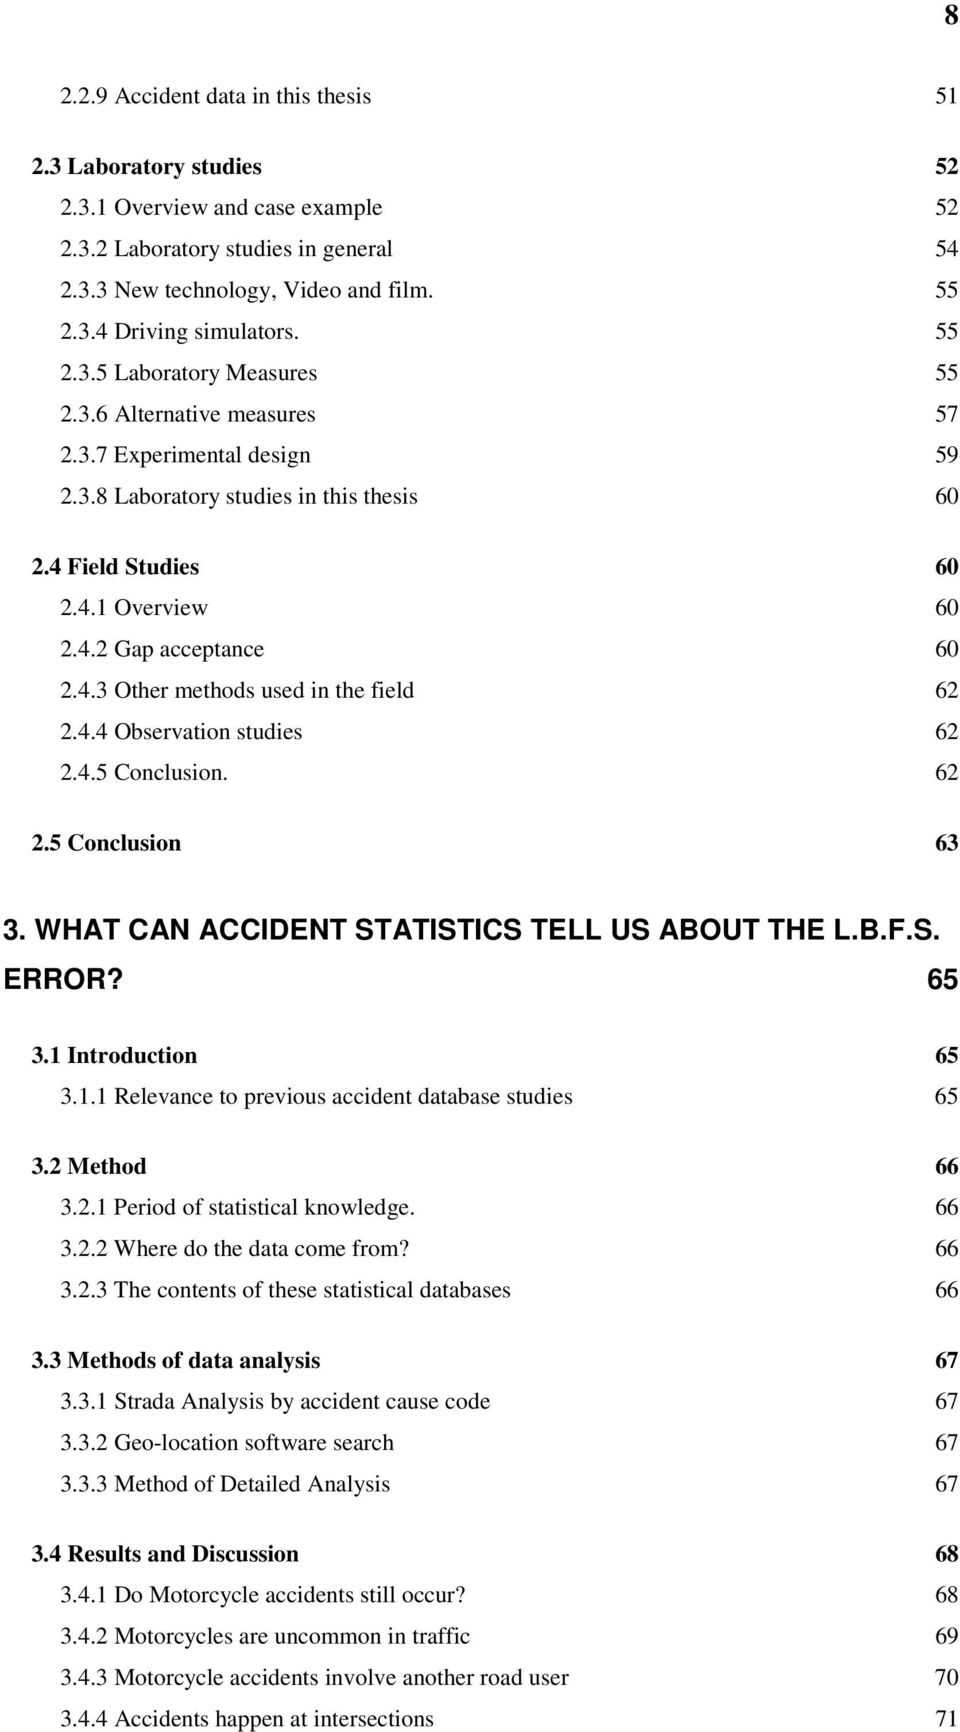 4.3 Other methods used in the field 62 2.4.4 Observation studies 62 2.4.5 Conclusion. 62 2.5 Conclusion 63 3. WHAT CAN ACCIDENT STATISTICS TELL US ABOUT THE L.B.F.S. ERROR? 65 3.1